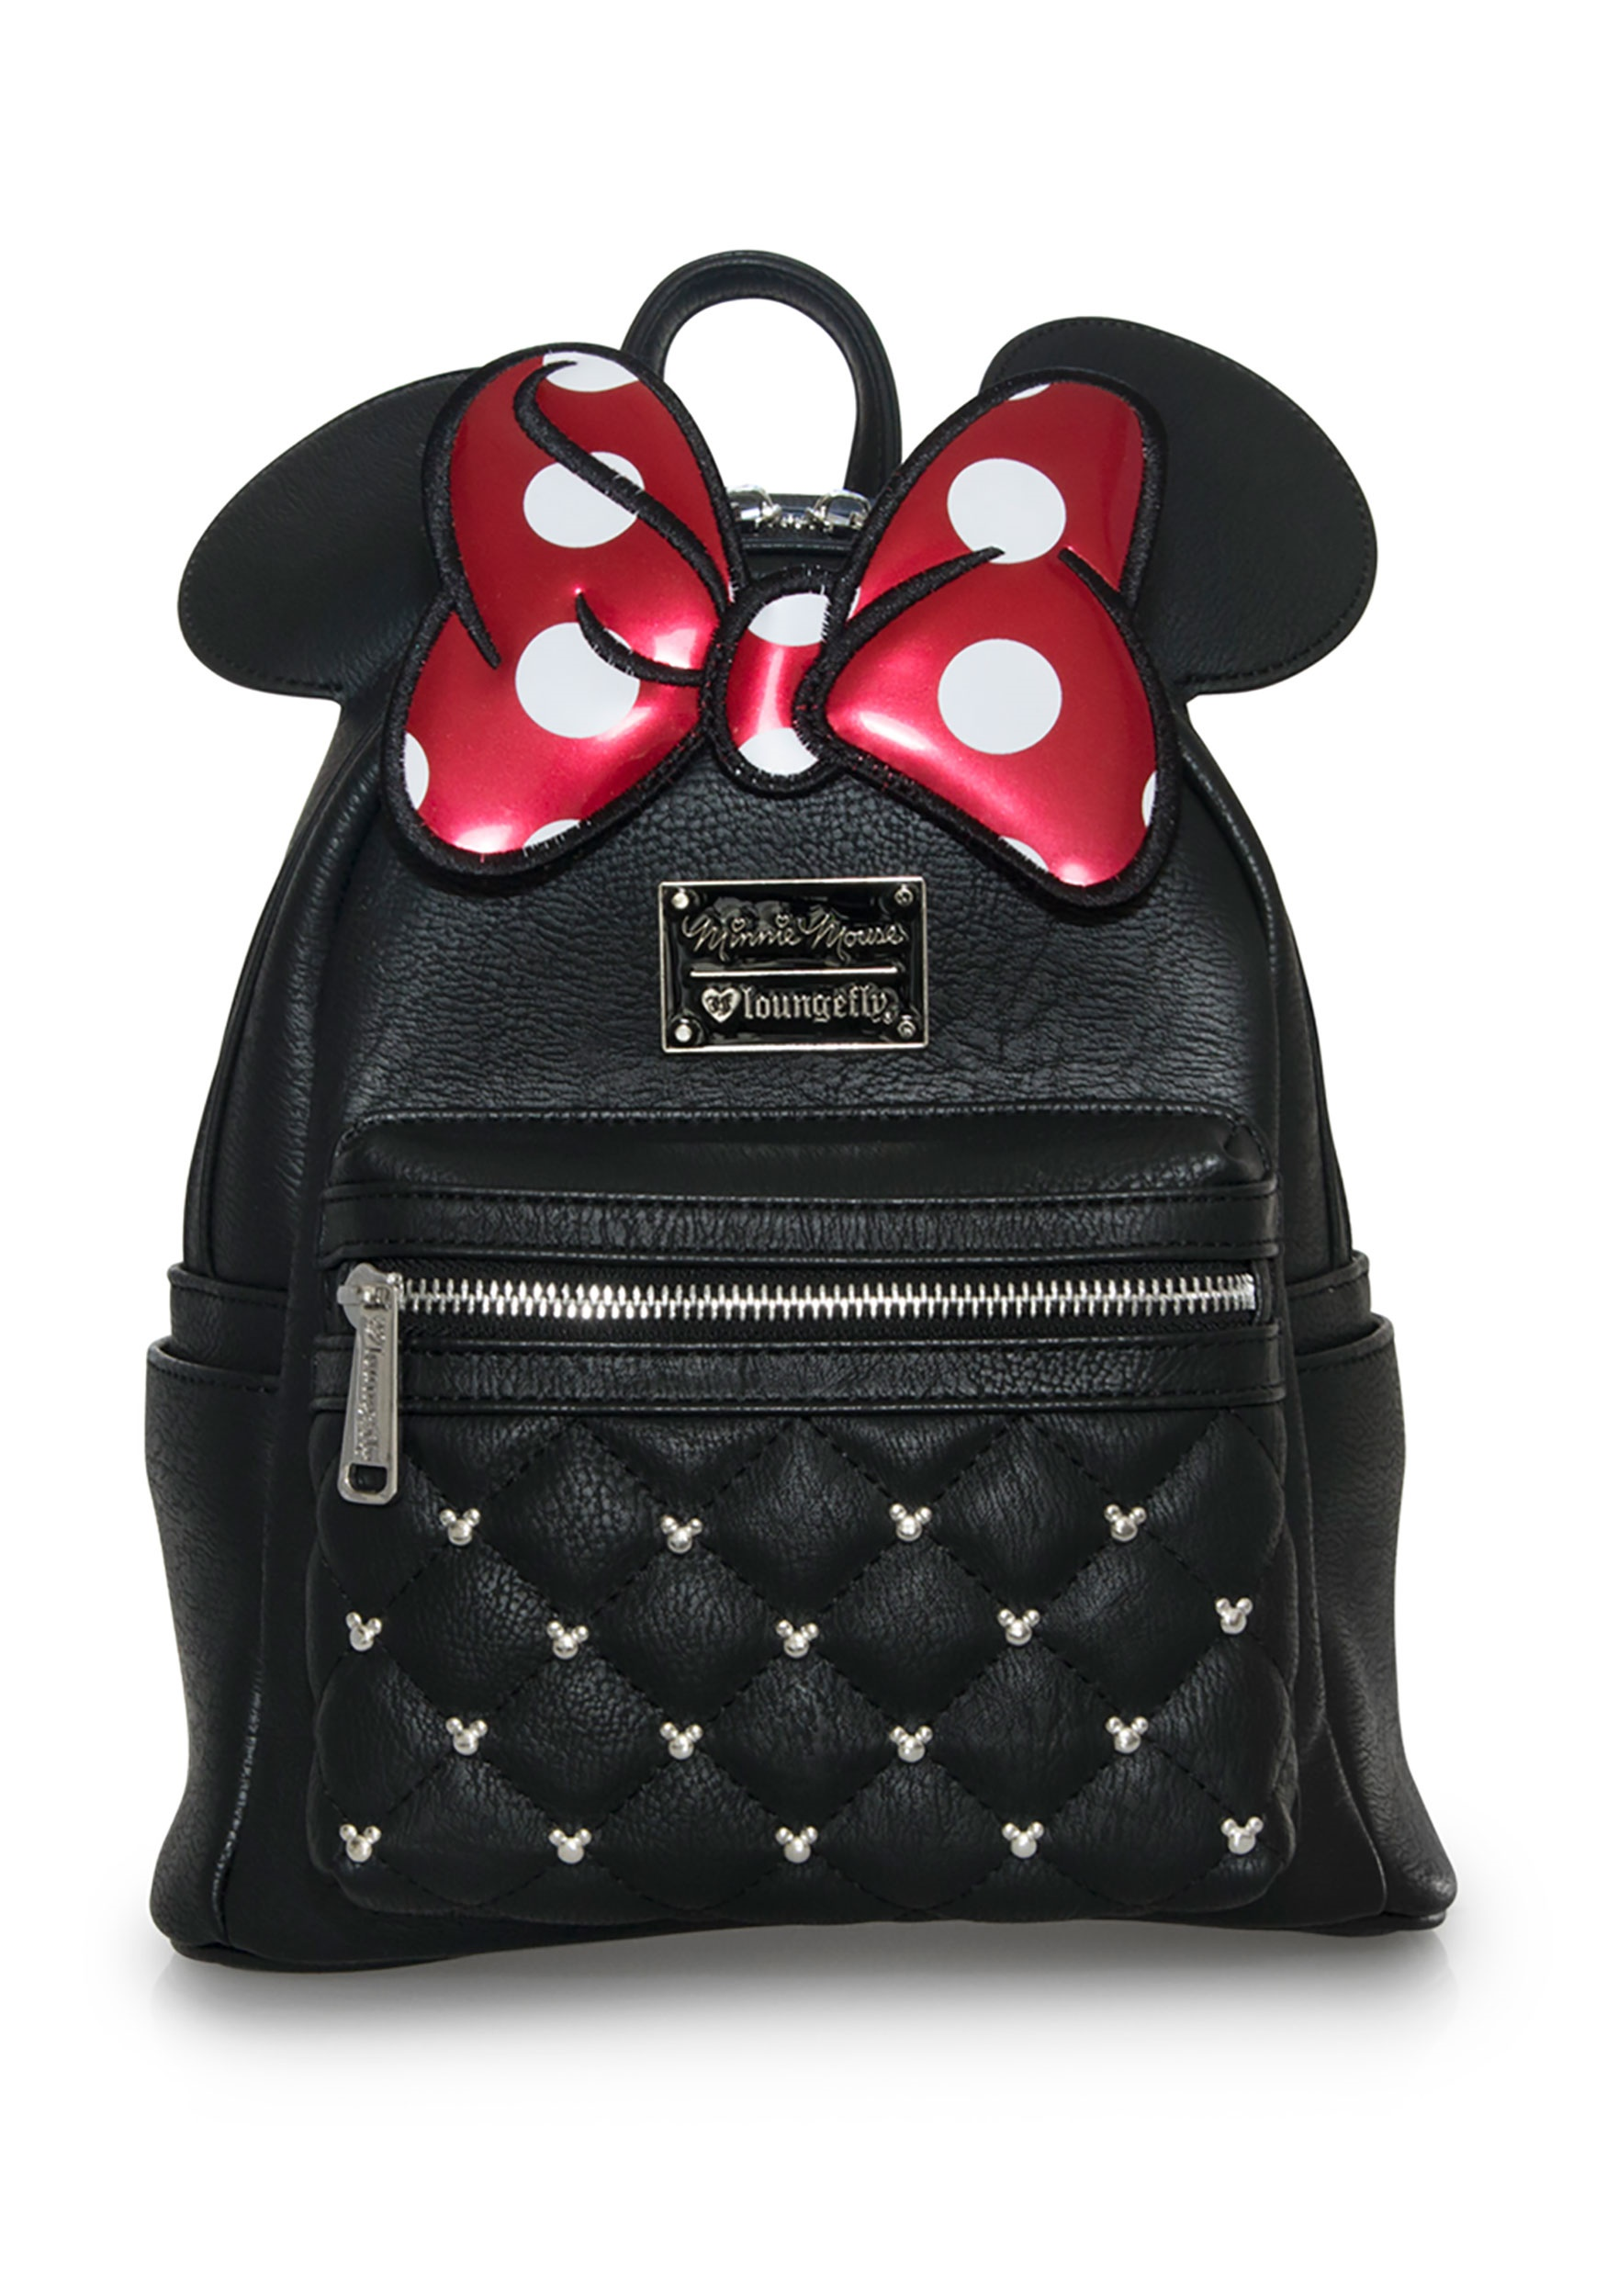 19f8a7487687 Minnie Mouse Faux Leather Mini Backpack